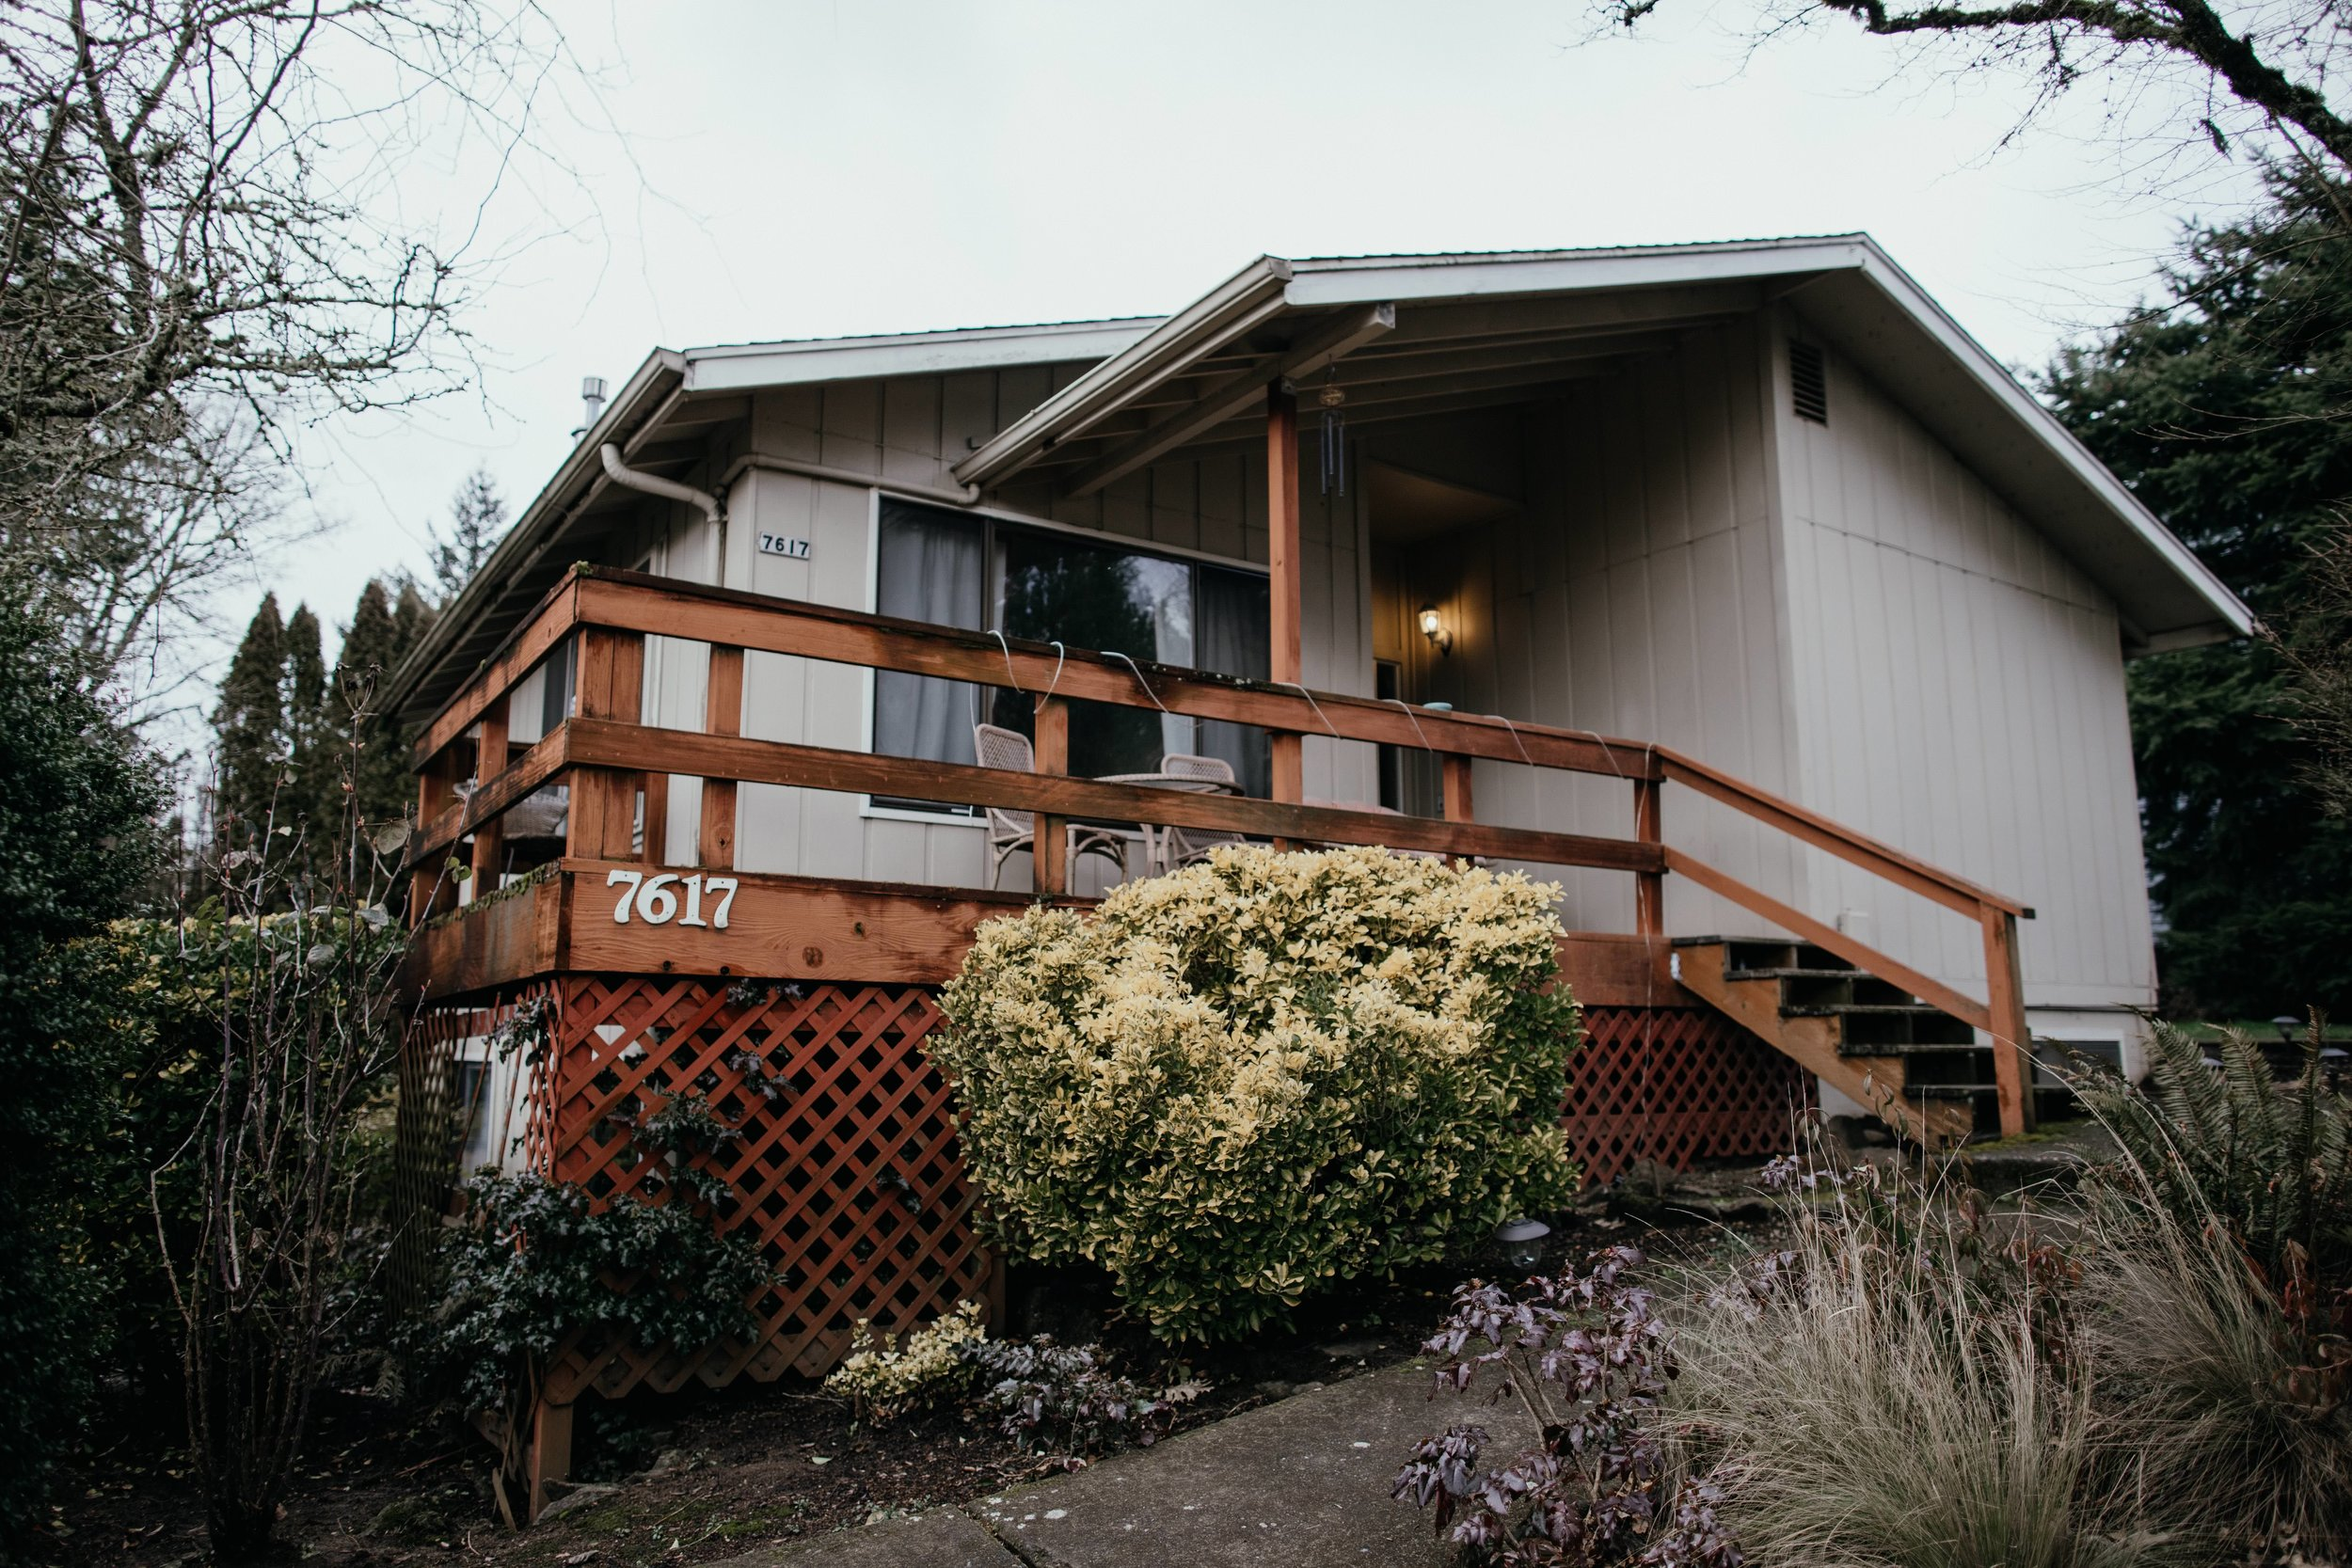 Sevlynn-Photography-Portland-Lifestyle-Home-Mary+Jeff-7585.jpg